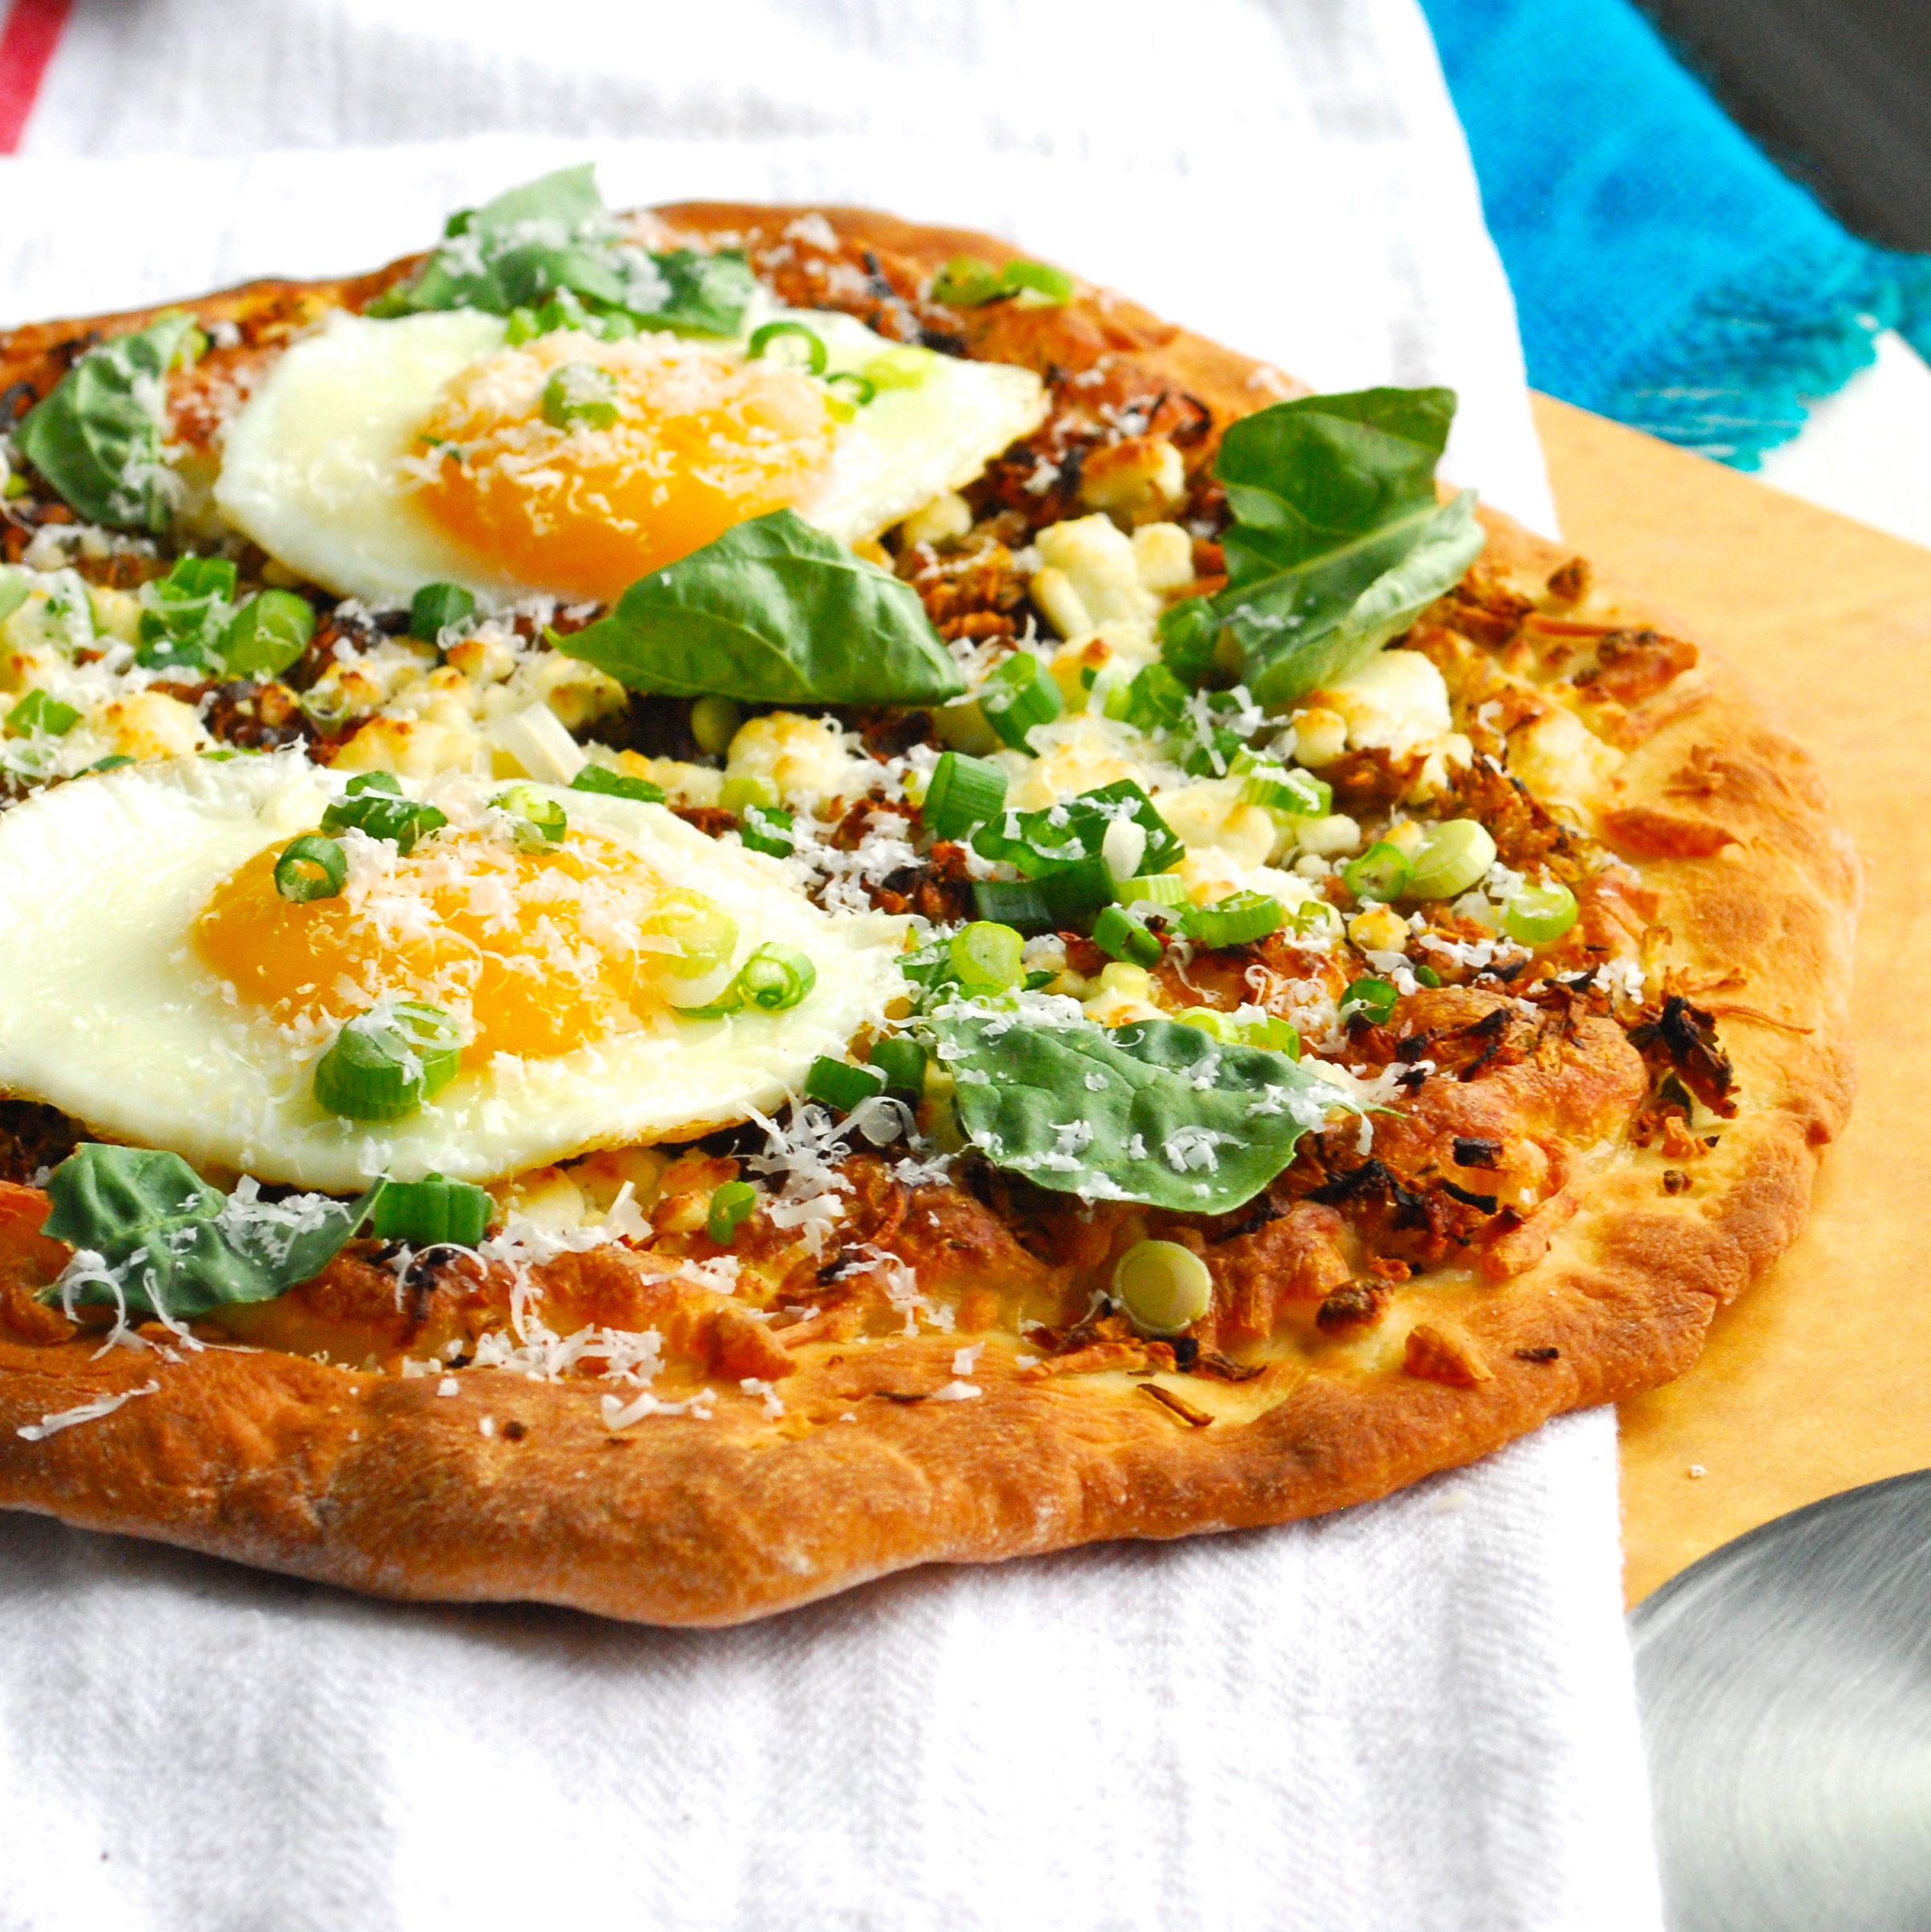 Crispy Shredded Sunchoke Pizza with Goat Cheese and Fried Eggs